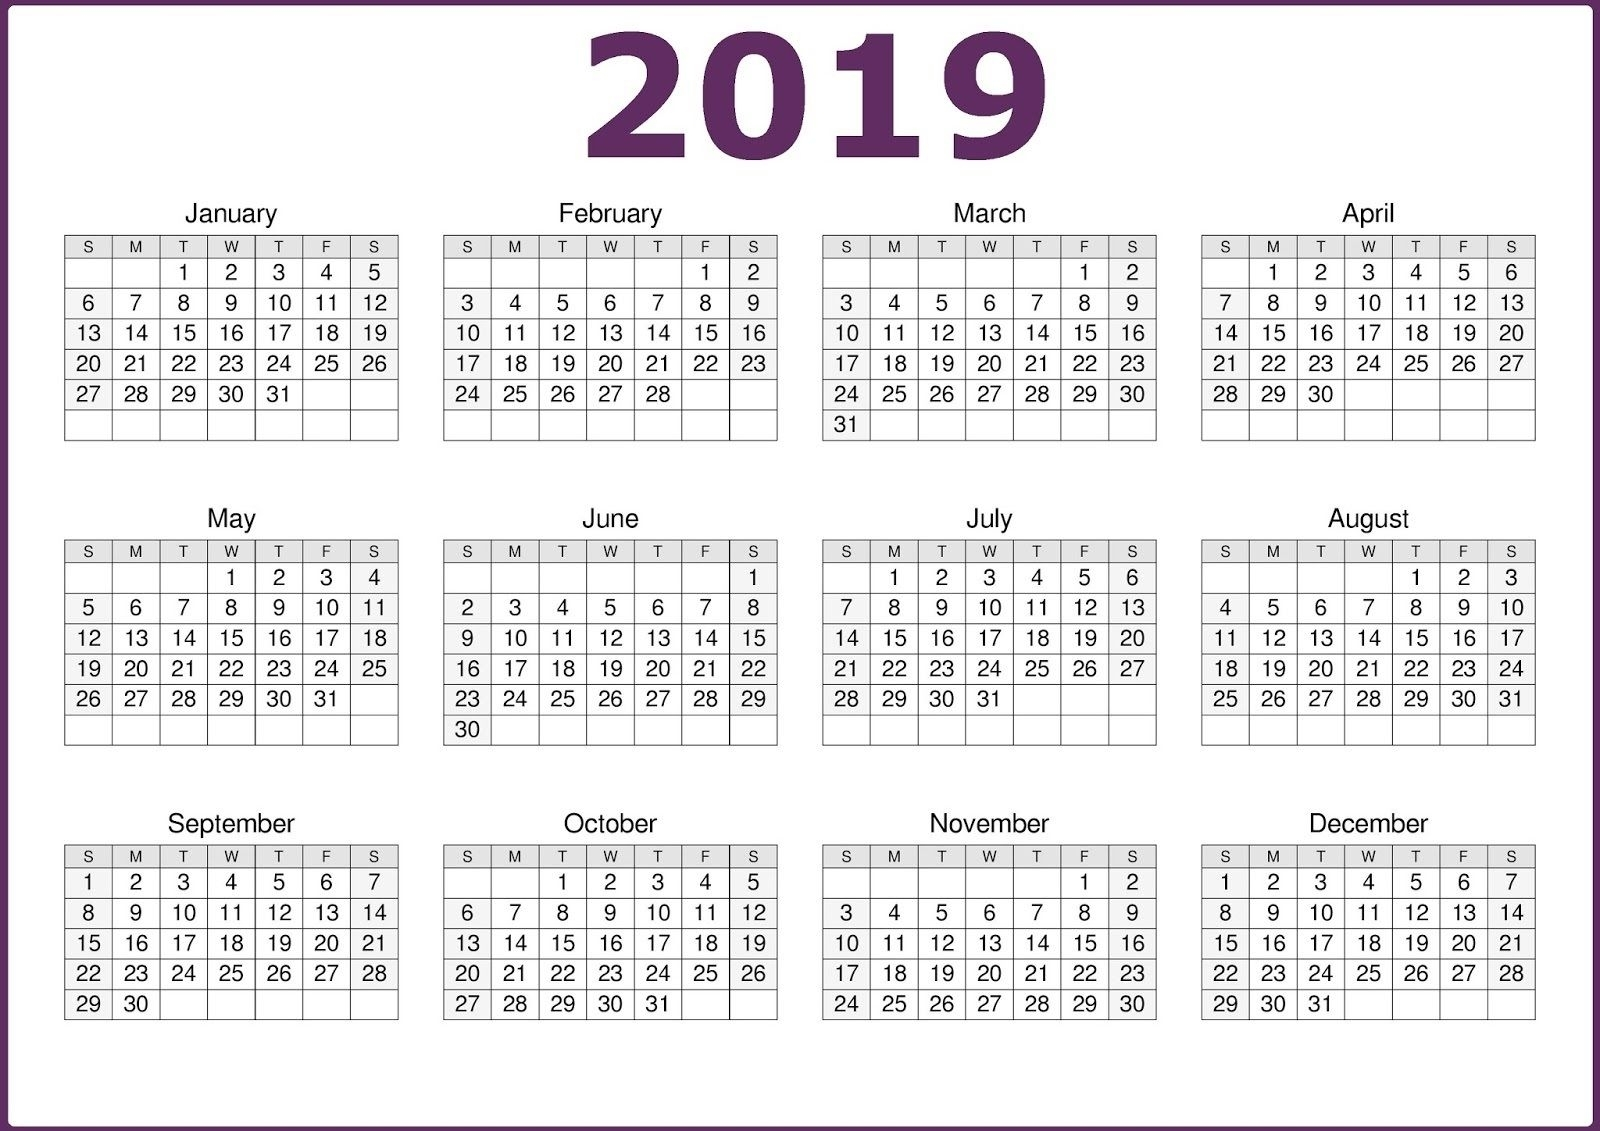 2019 One Page 12 Months Calendar | 2019 Calendars regarding 12 Month Calendar On One Page